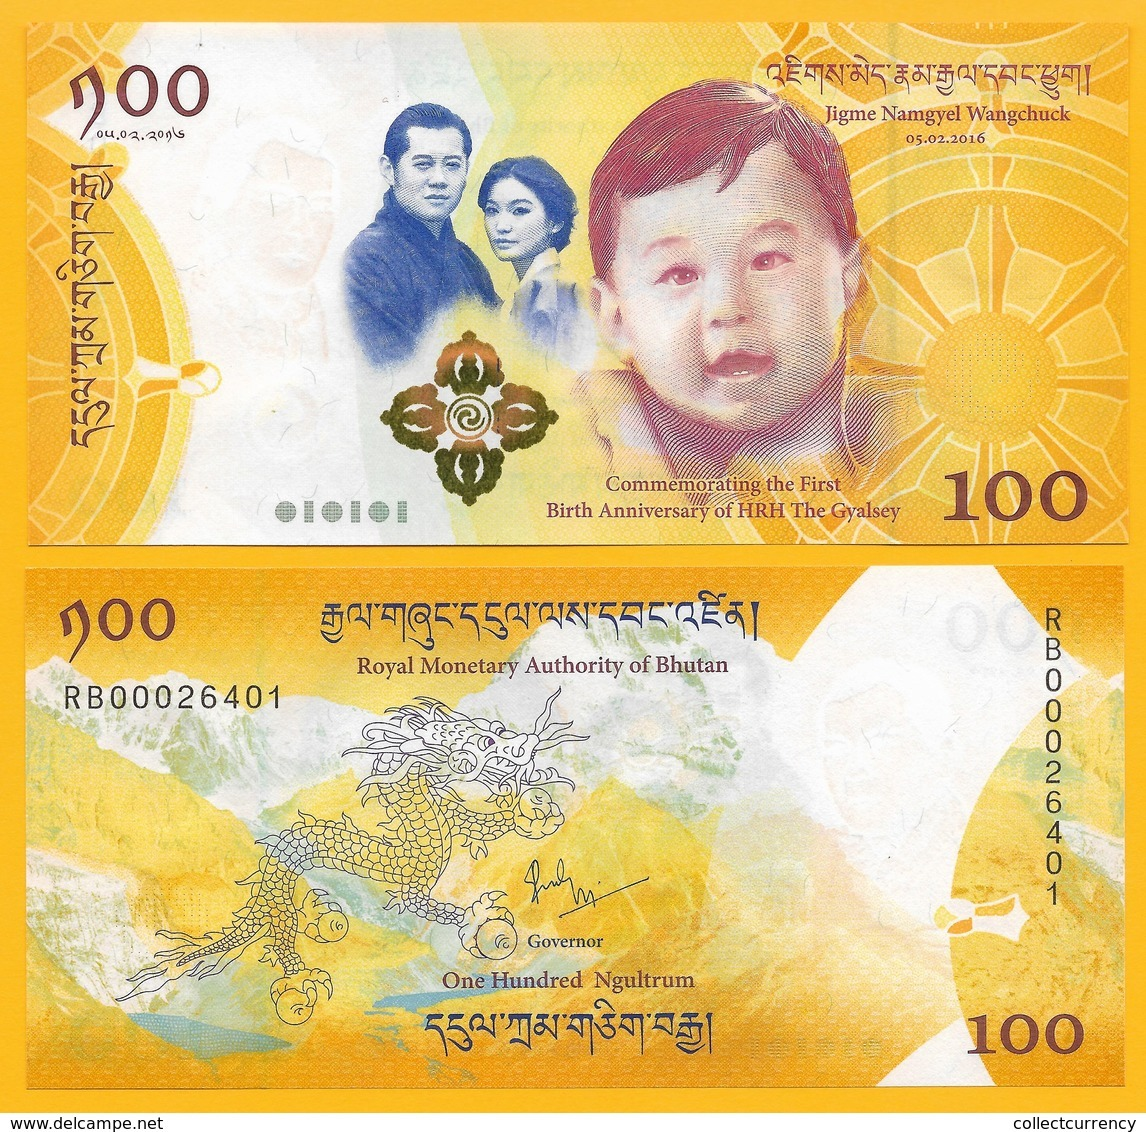 Bhutan 100 Ngultrum P-new 2016 Commemorative First Anniversary Prince (without Folder) UNC Banknote - Bhutan